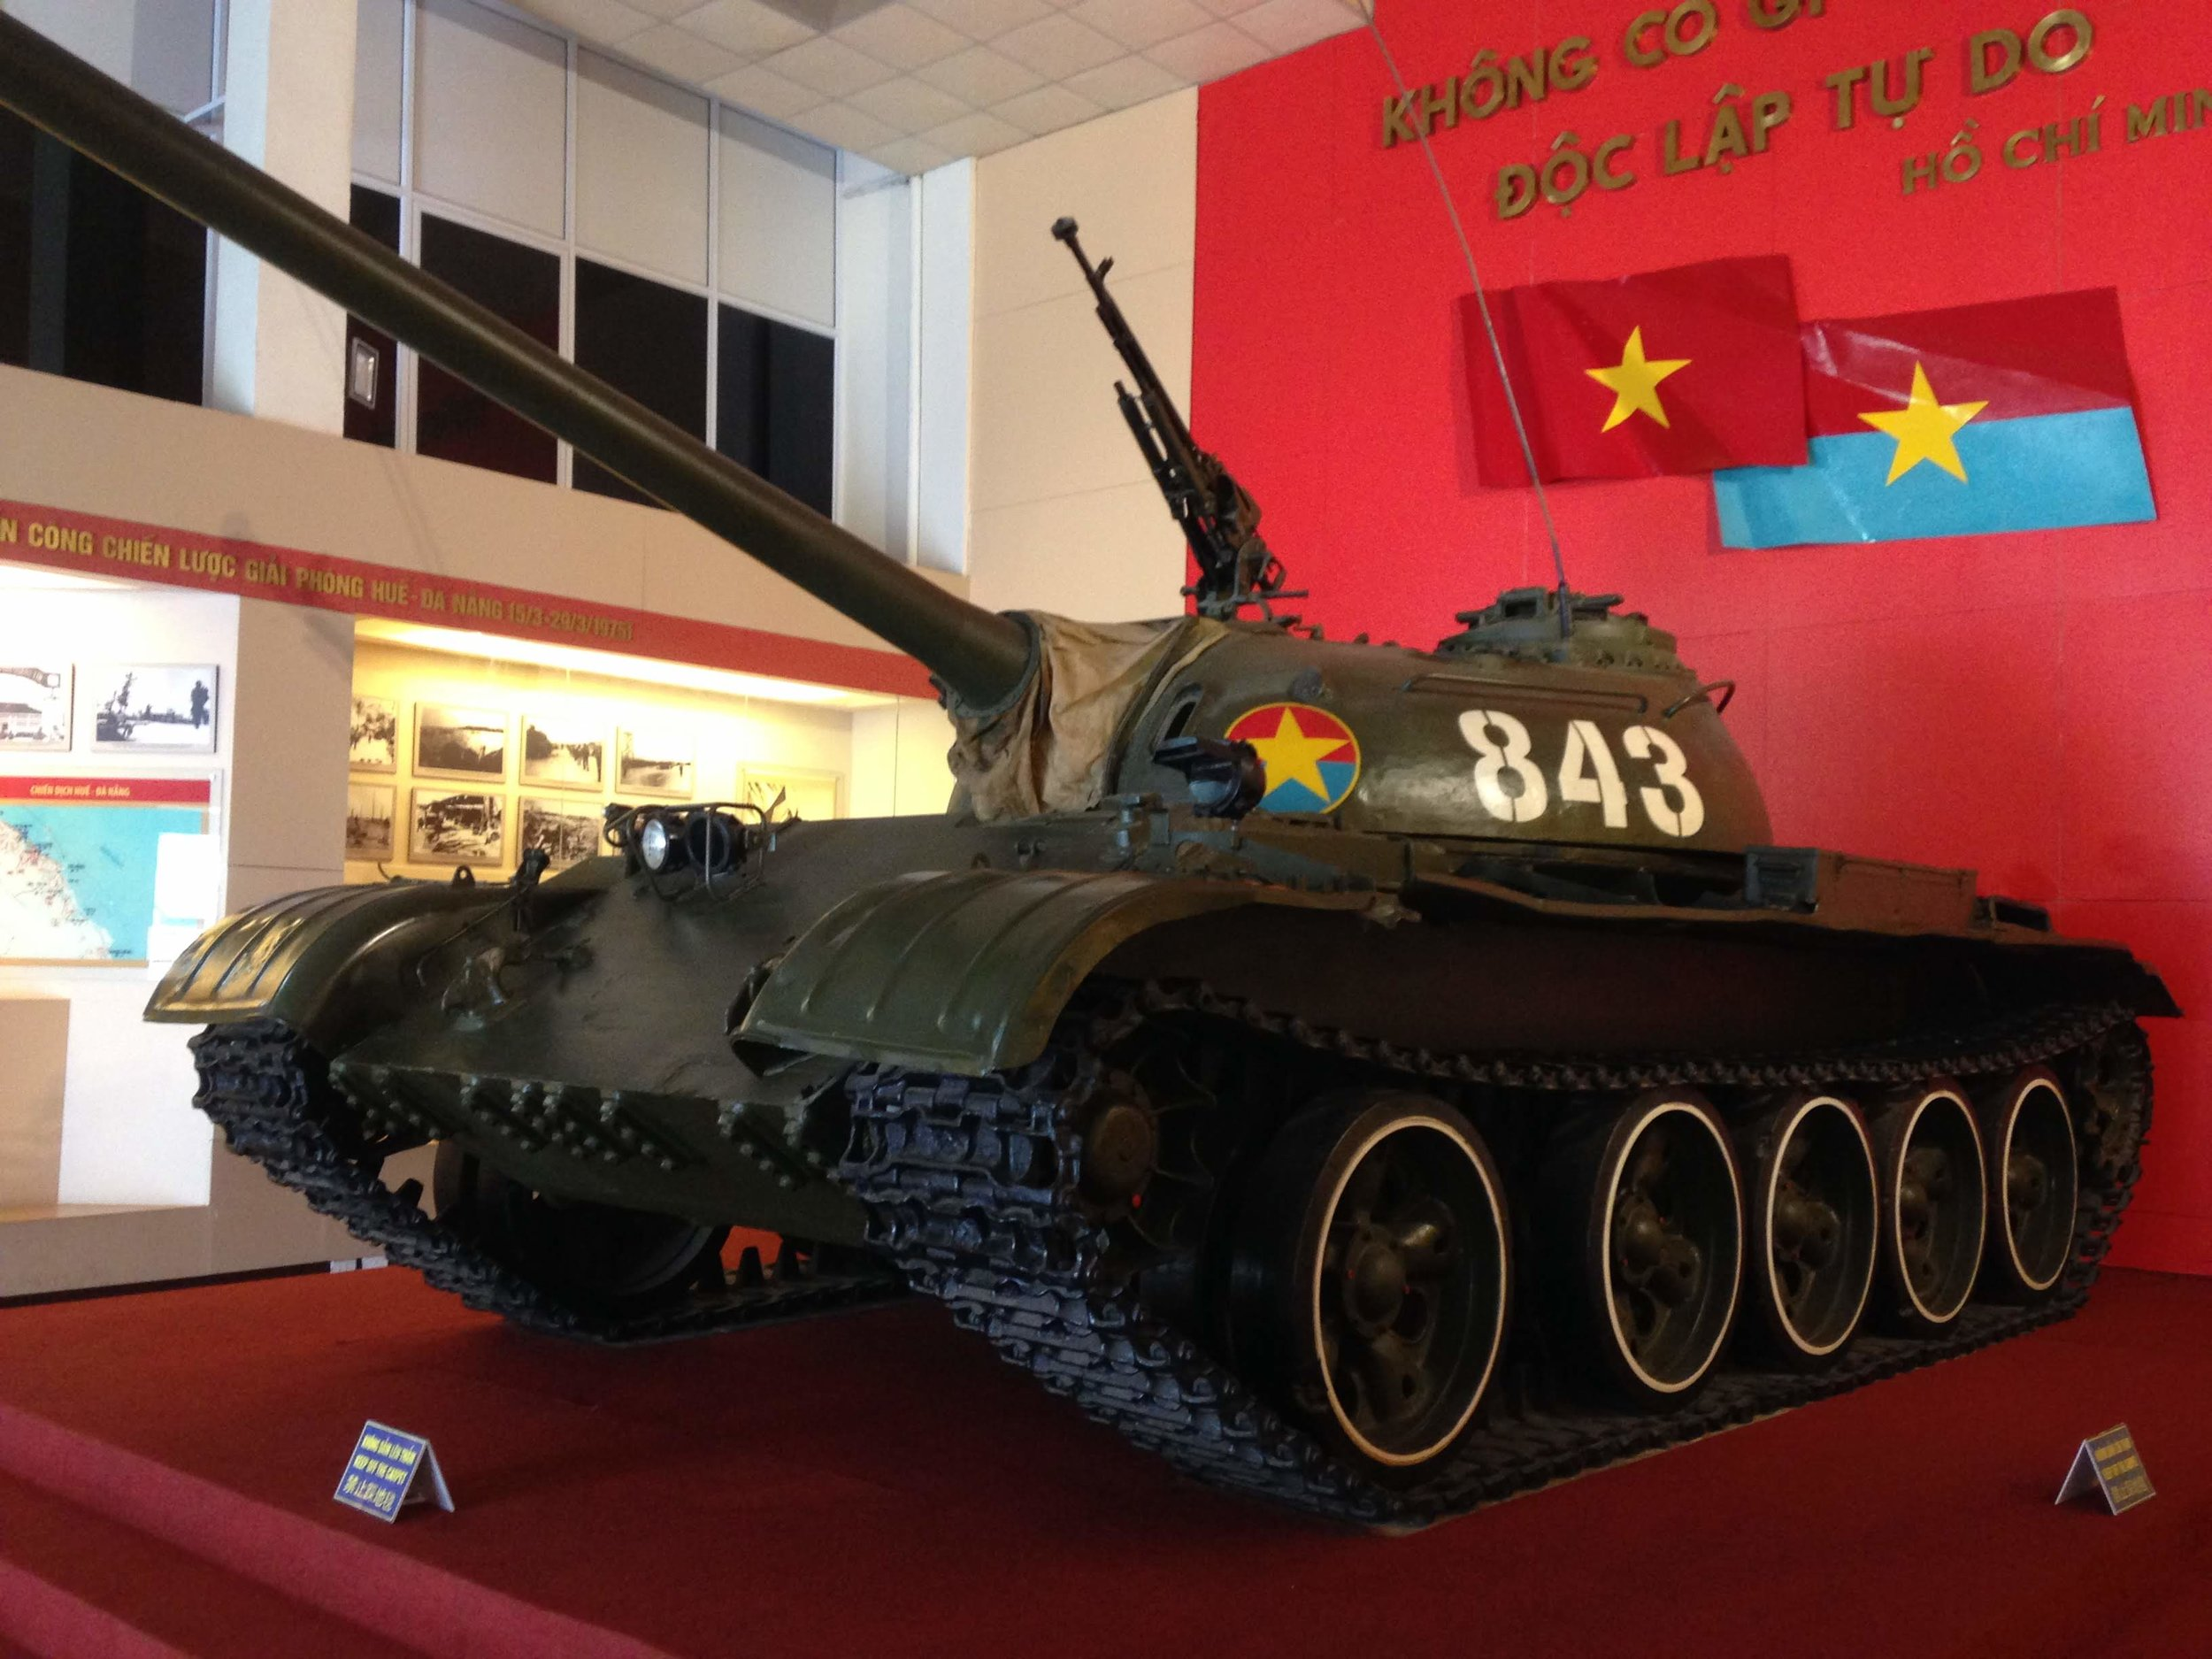 North Vietnamese tank on display in the museum